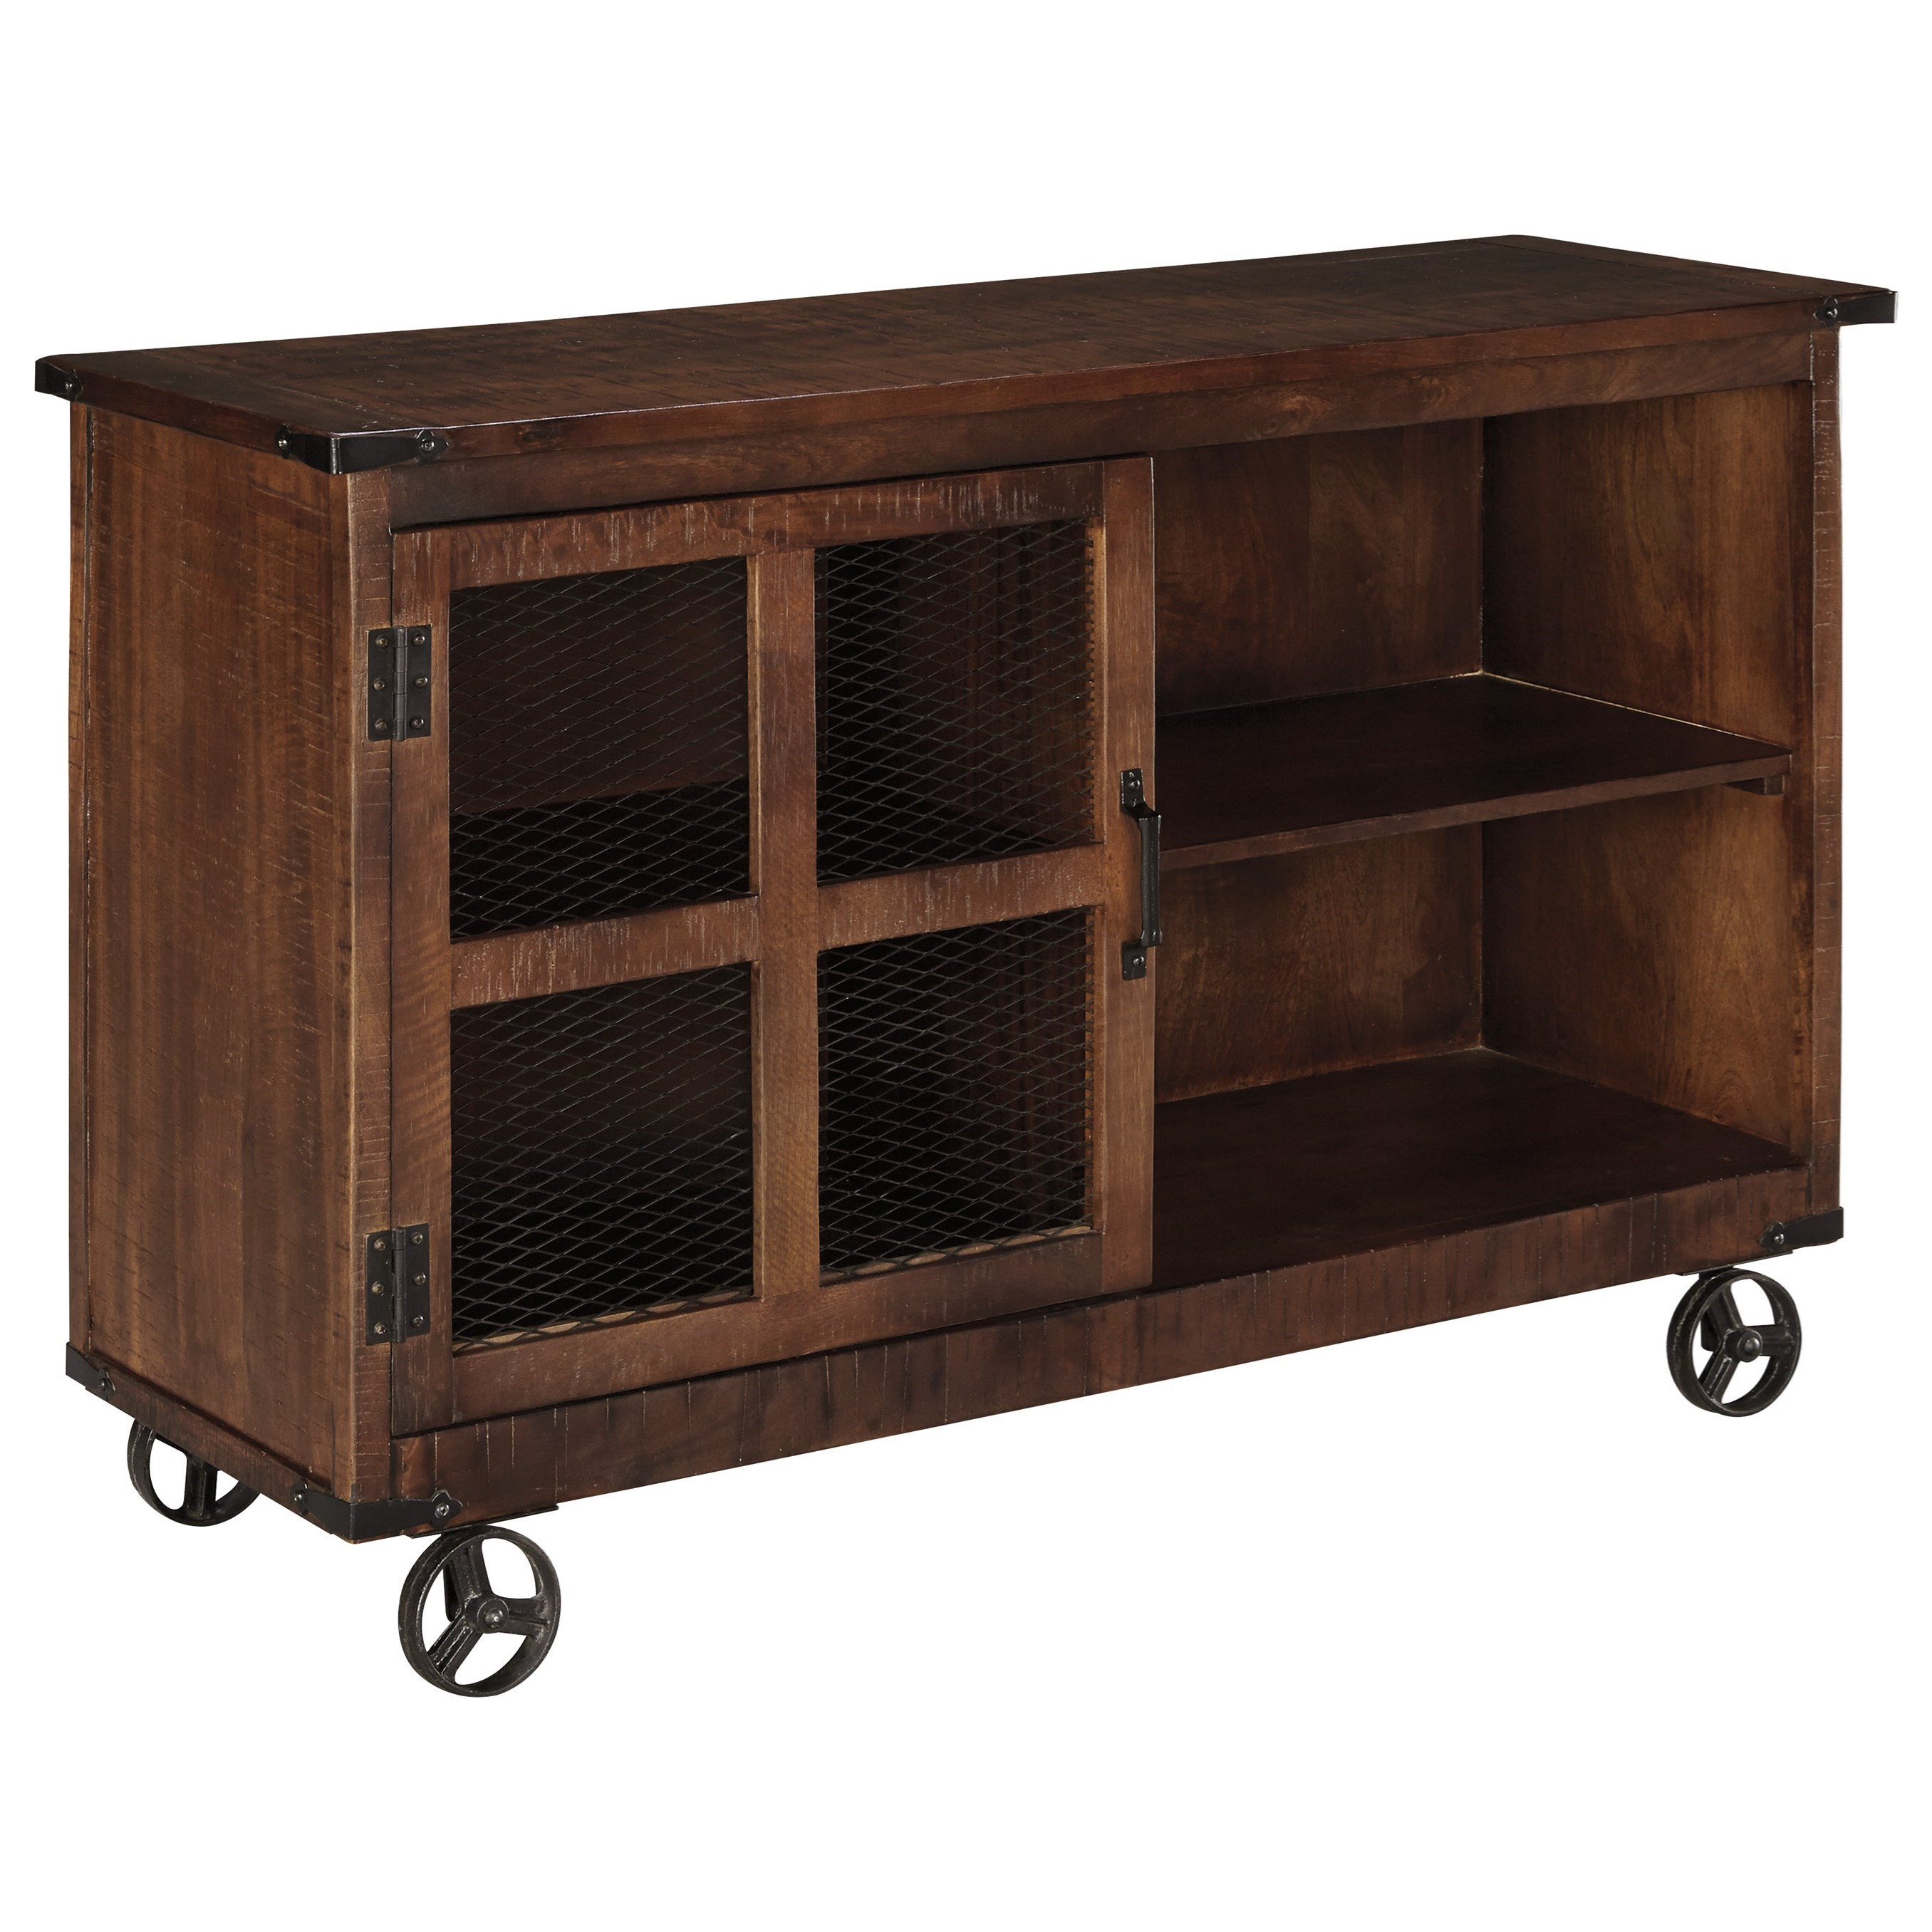 ashley signature design norlandon rustic industrial console with door wheels johnny. Black Bedroom Furniture Sets. Home Design Ideas